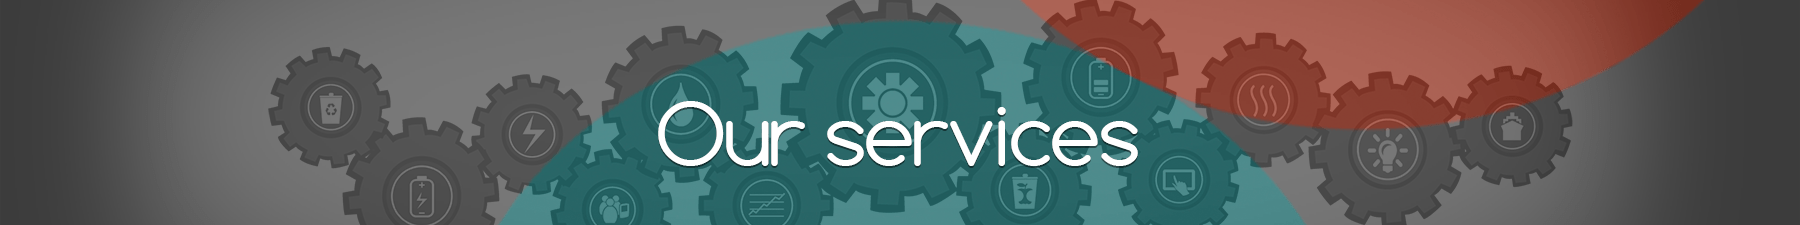 Our-services-July-16